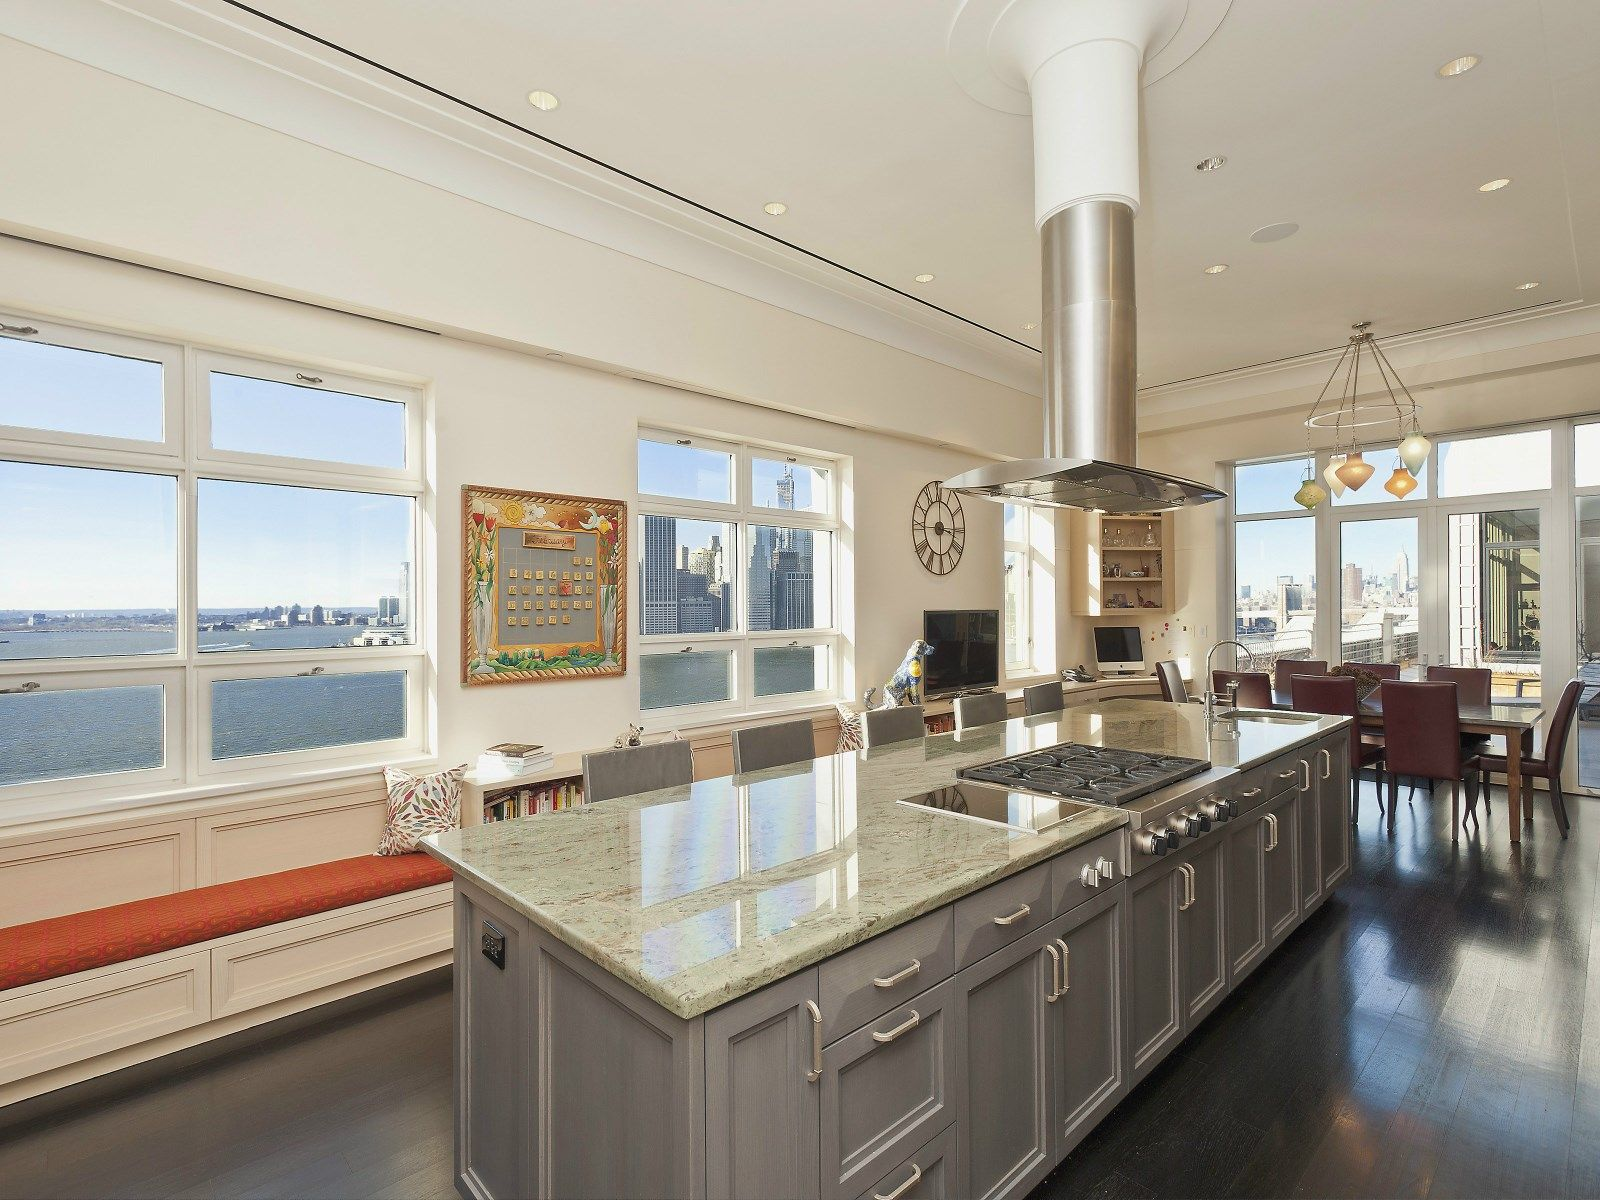 View This Luxury Home Located At 360 Furman Street Apt 1131 Brooklyn, New  York, United States. Sothebyu0027s International Realty Gives You Detailed  Information ...